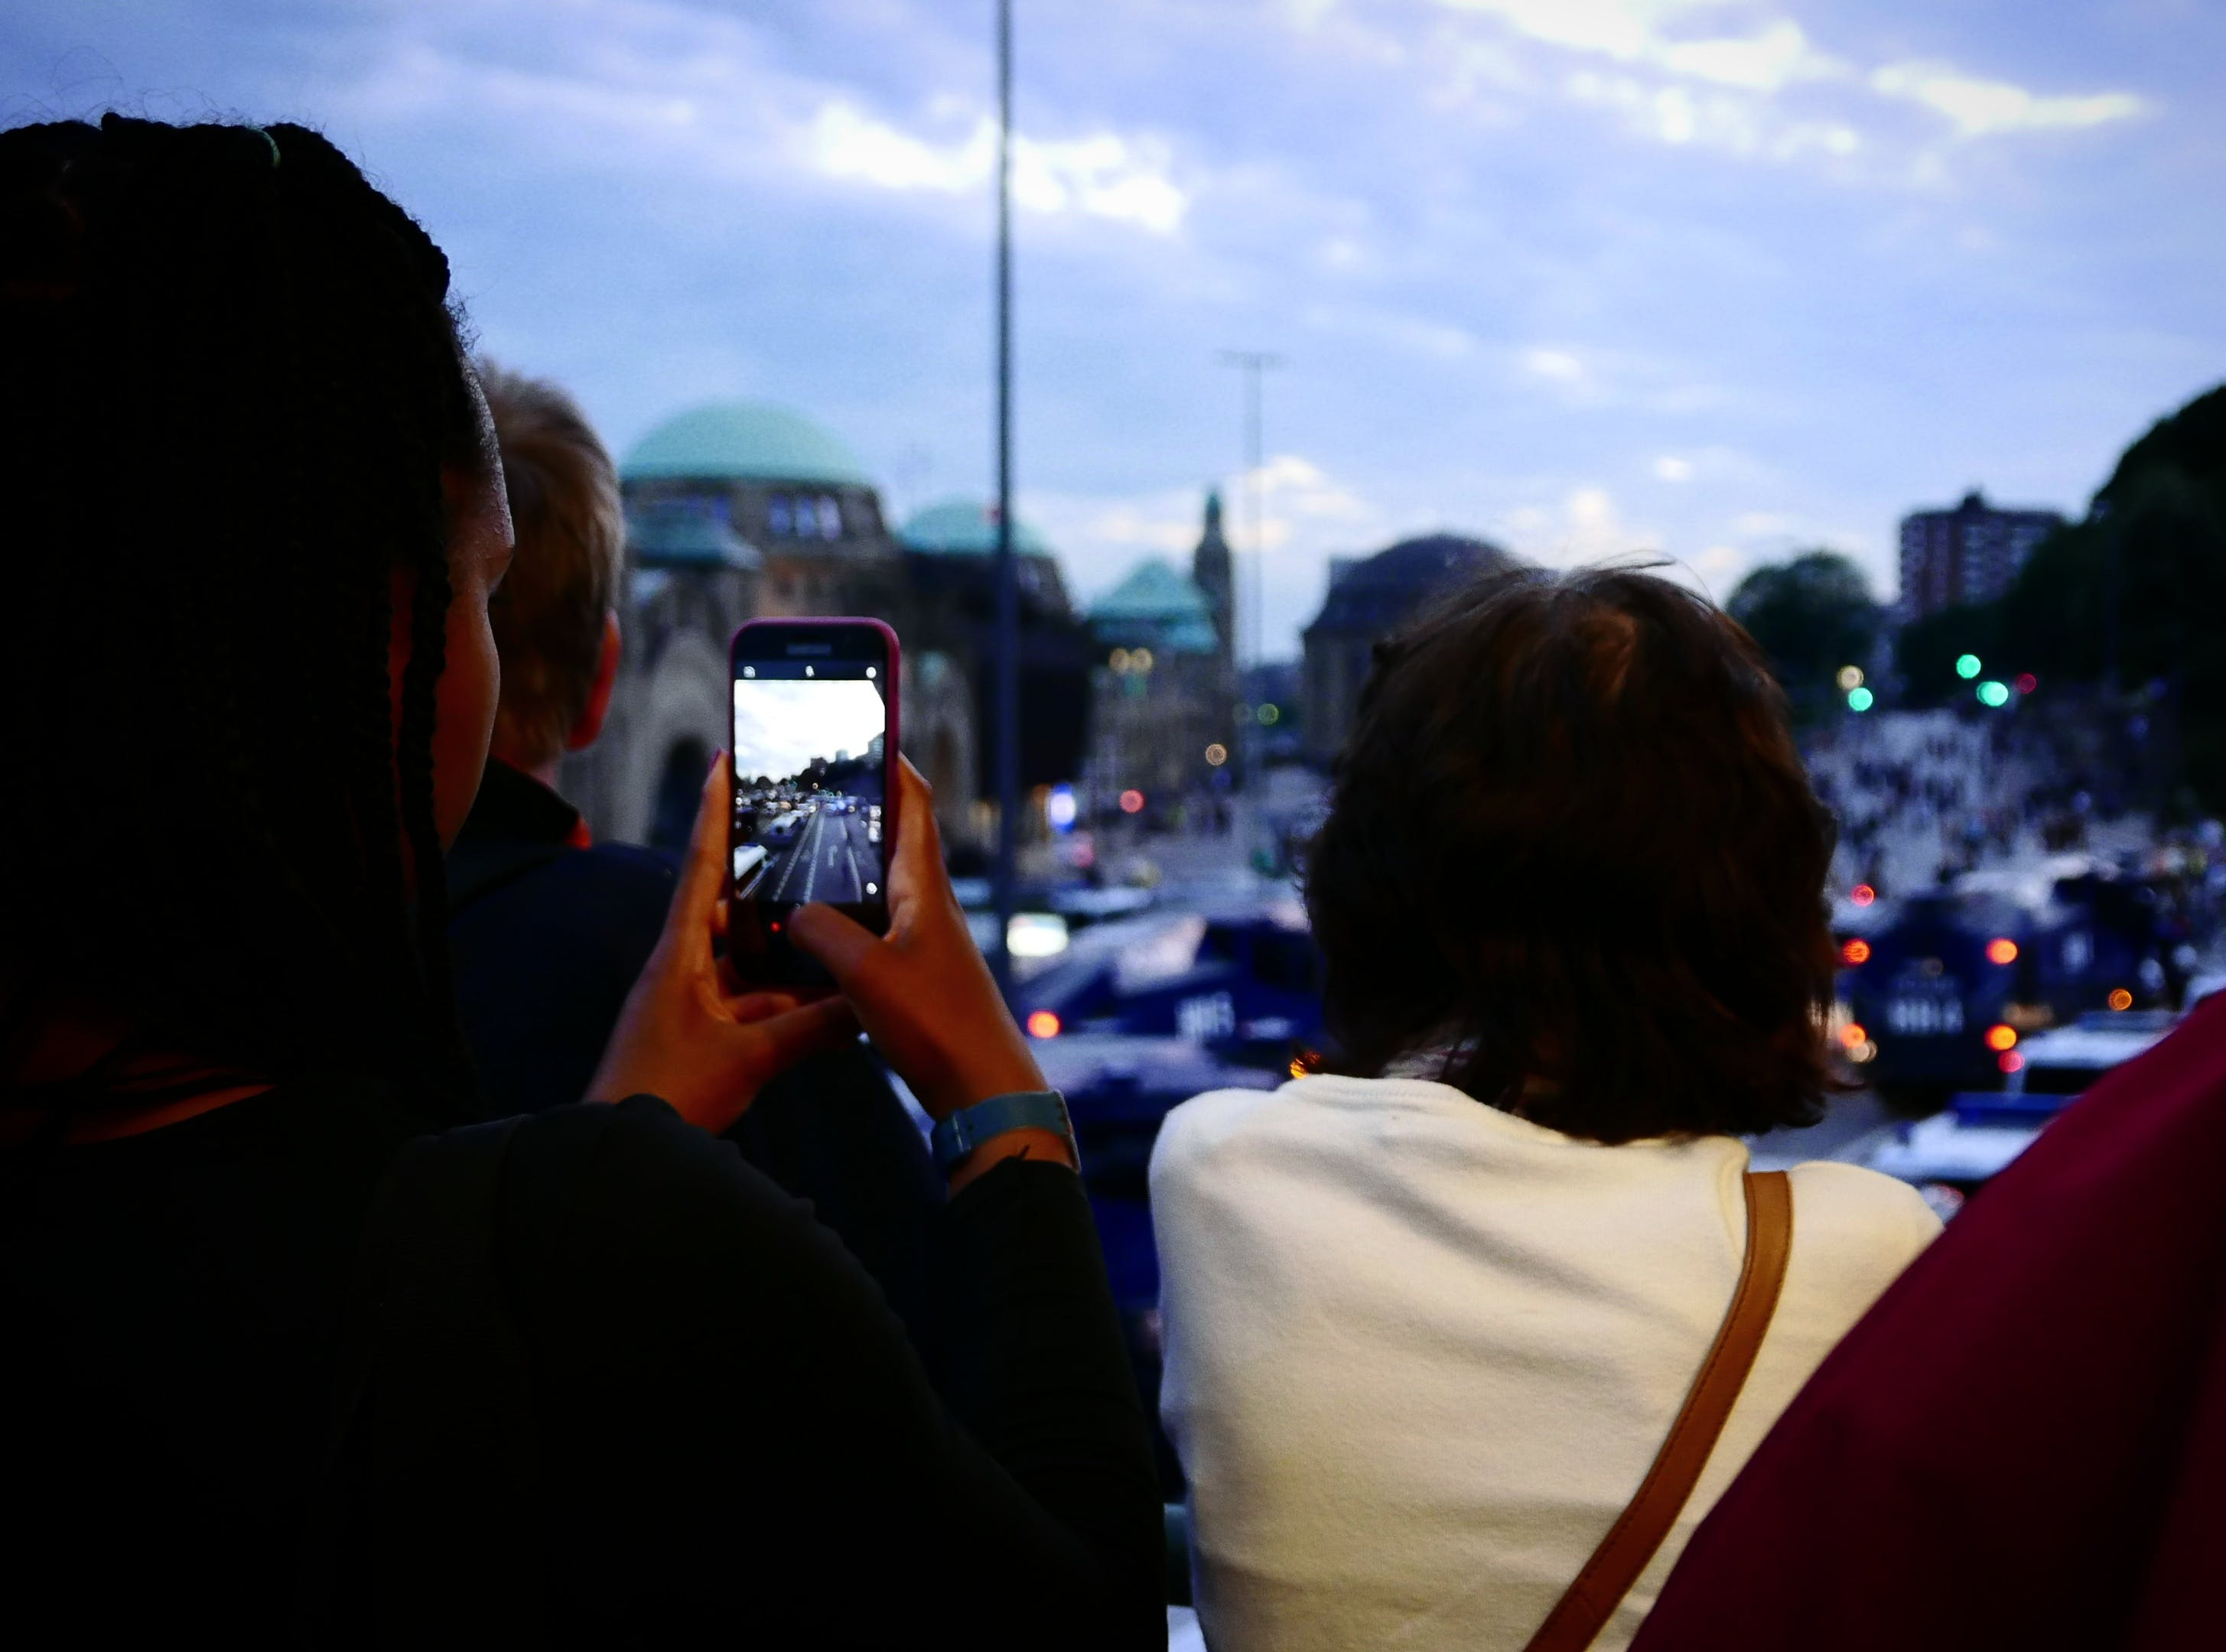 Free stock photo of cellphone, evening, g20, g20summit